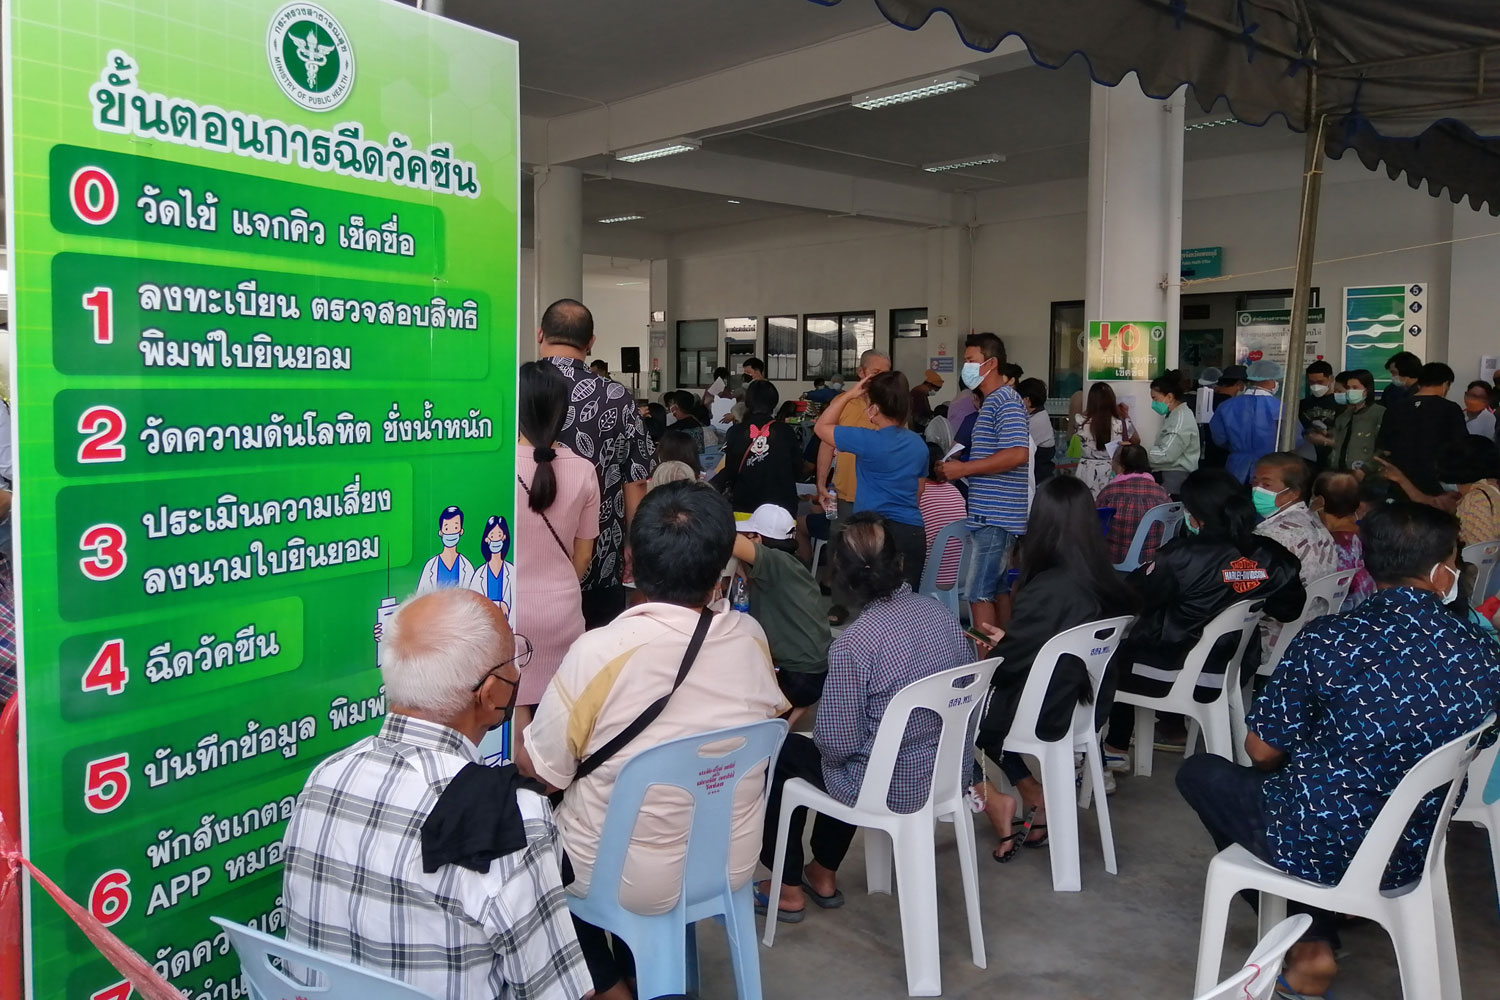 People wait for inoculation at a vaccine service venue in Phetchaburi, which authorities say is ready to reopen to tourists on Oct 1.  (Photo: Chaiwat Satyaem)